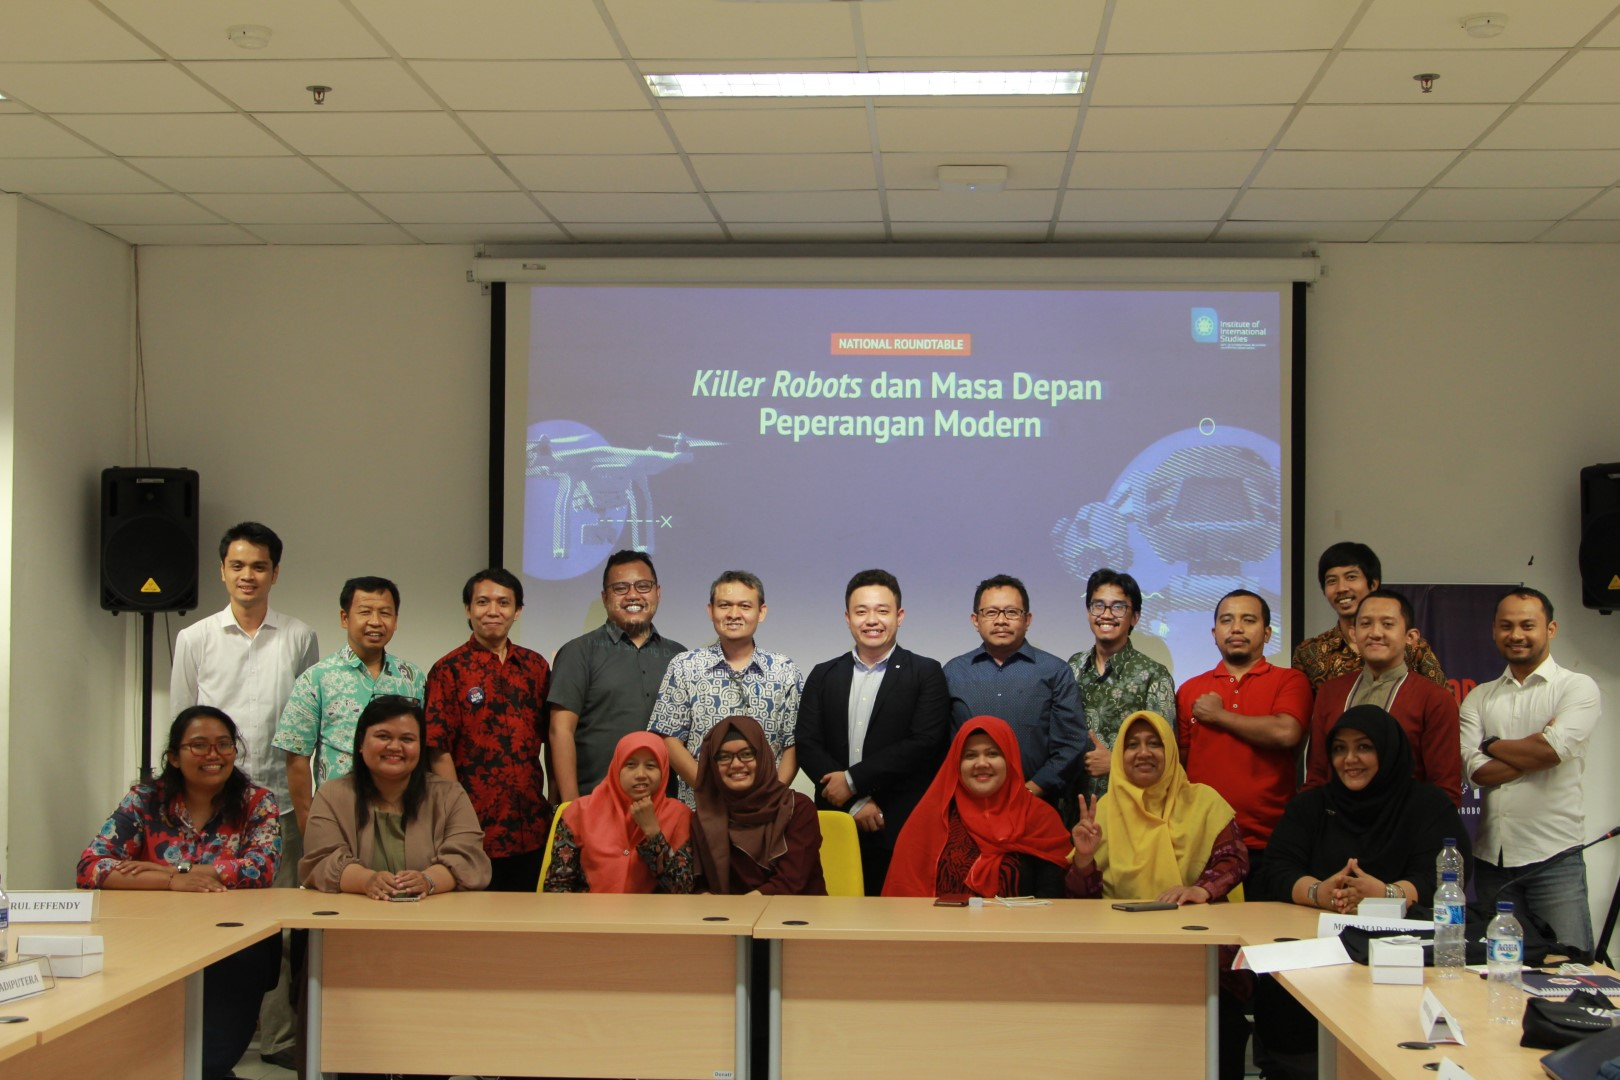 National Round Table Discussion on 'Killer Robots' dan Masa Depan Peperangan Modern